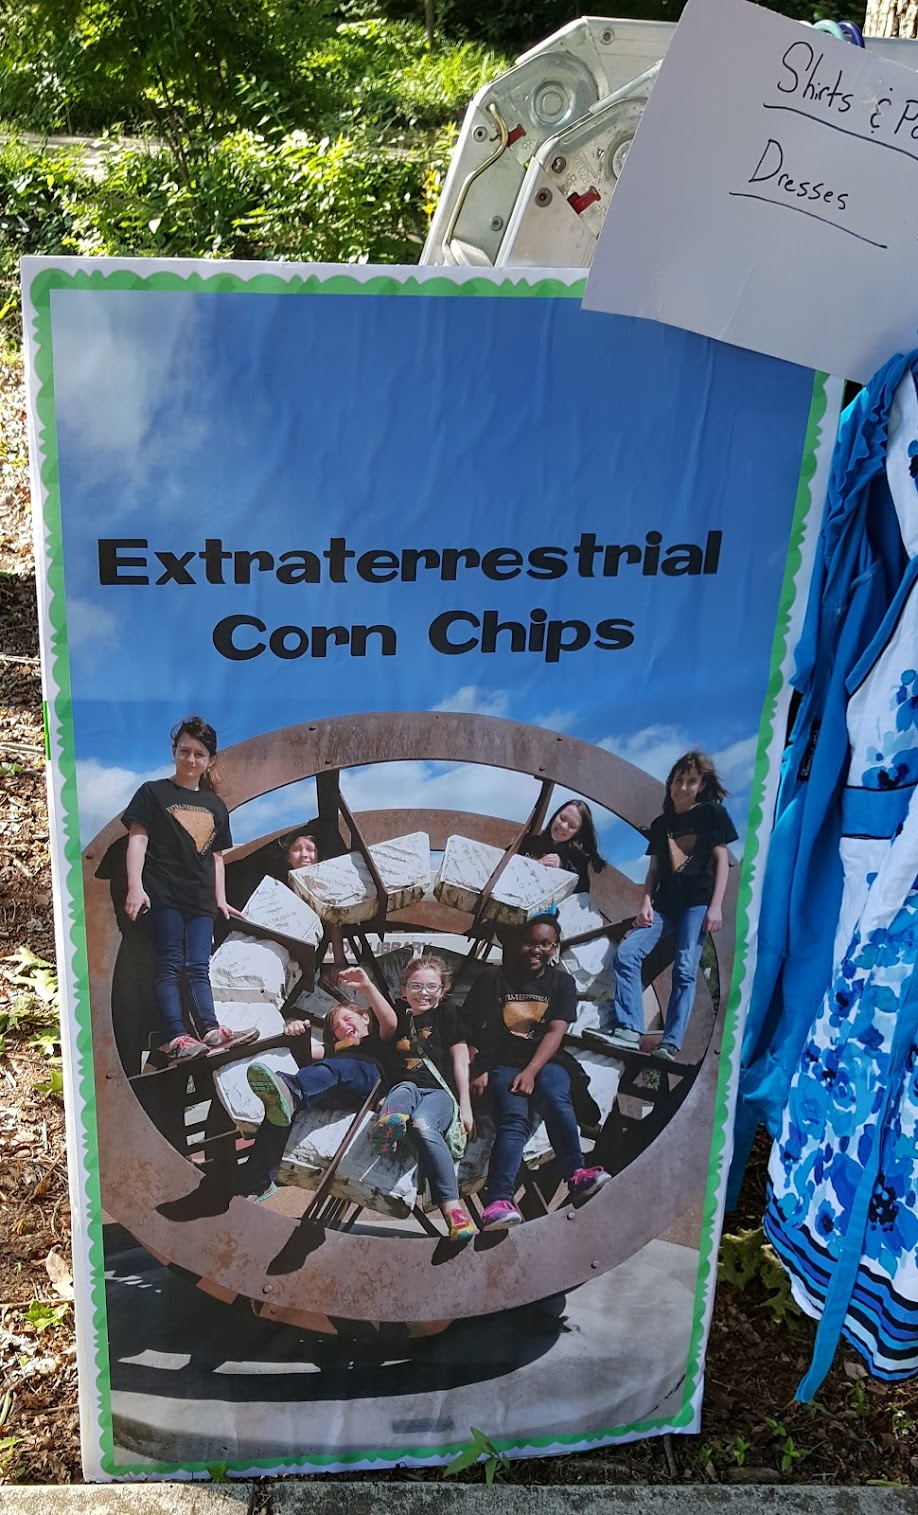 Extraterrestrial Corn Chips Poster YARD SALE FIND